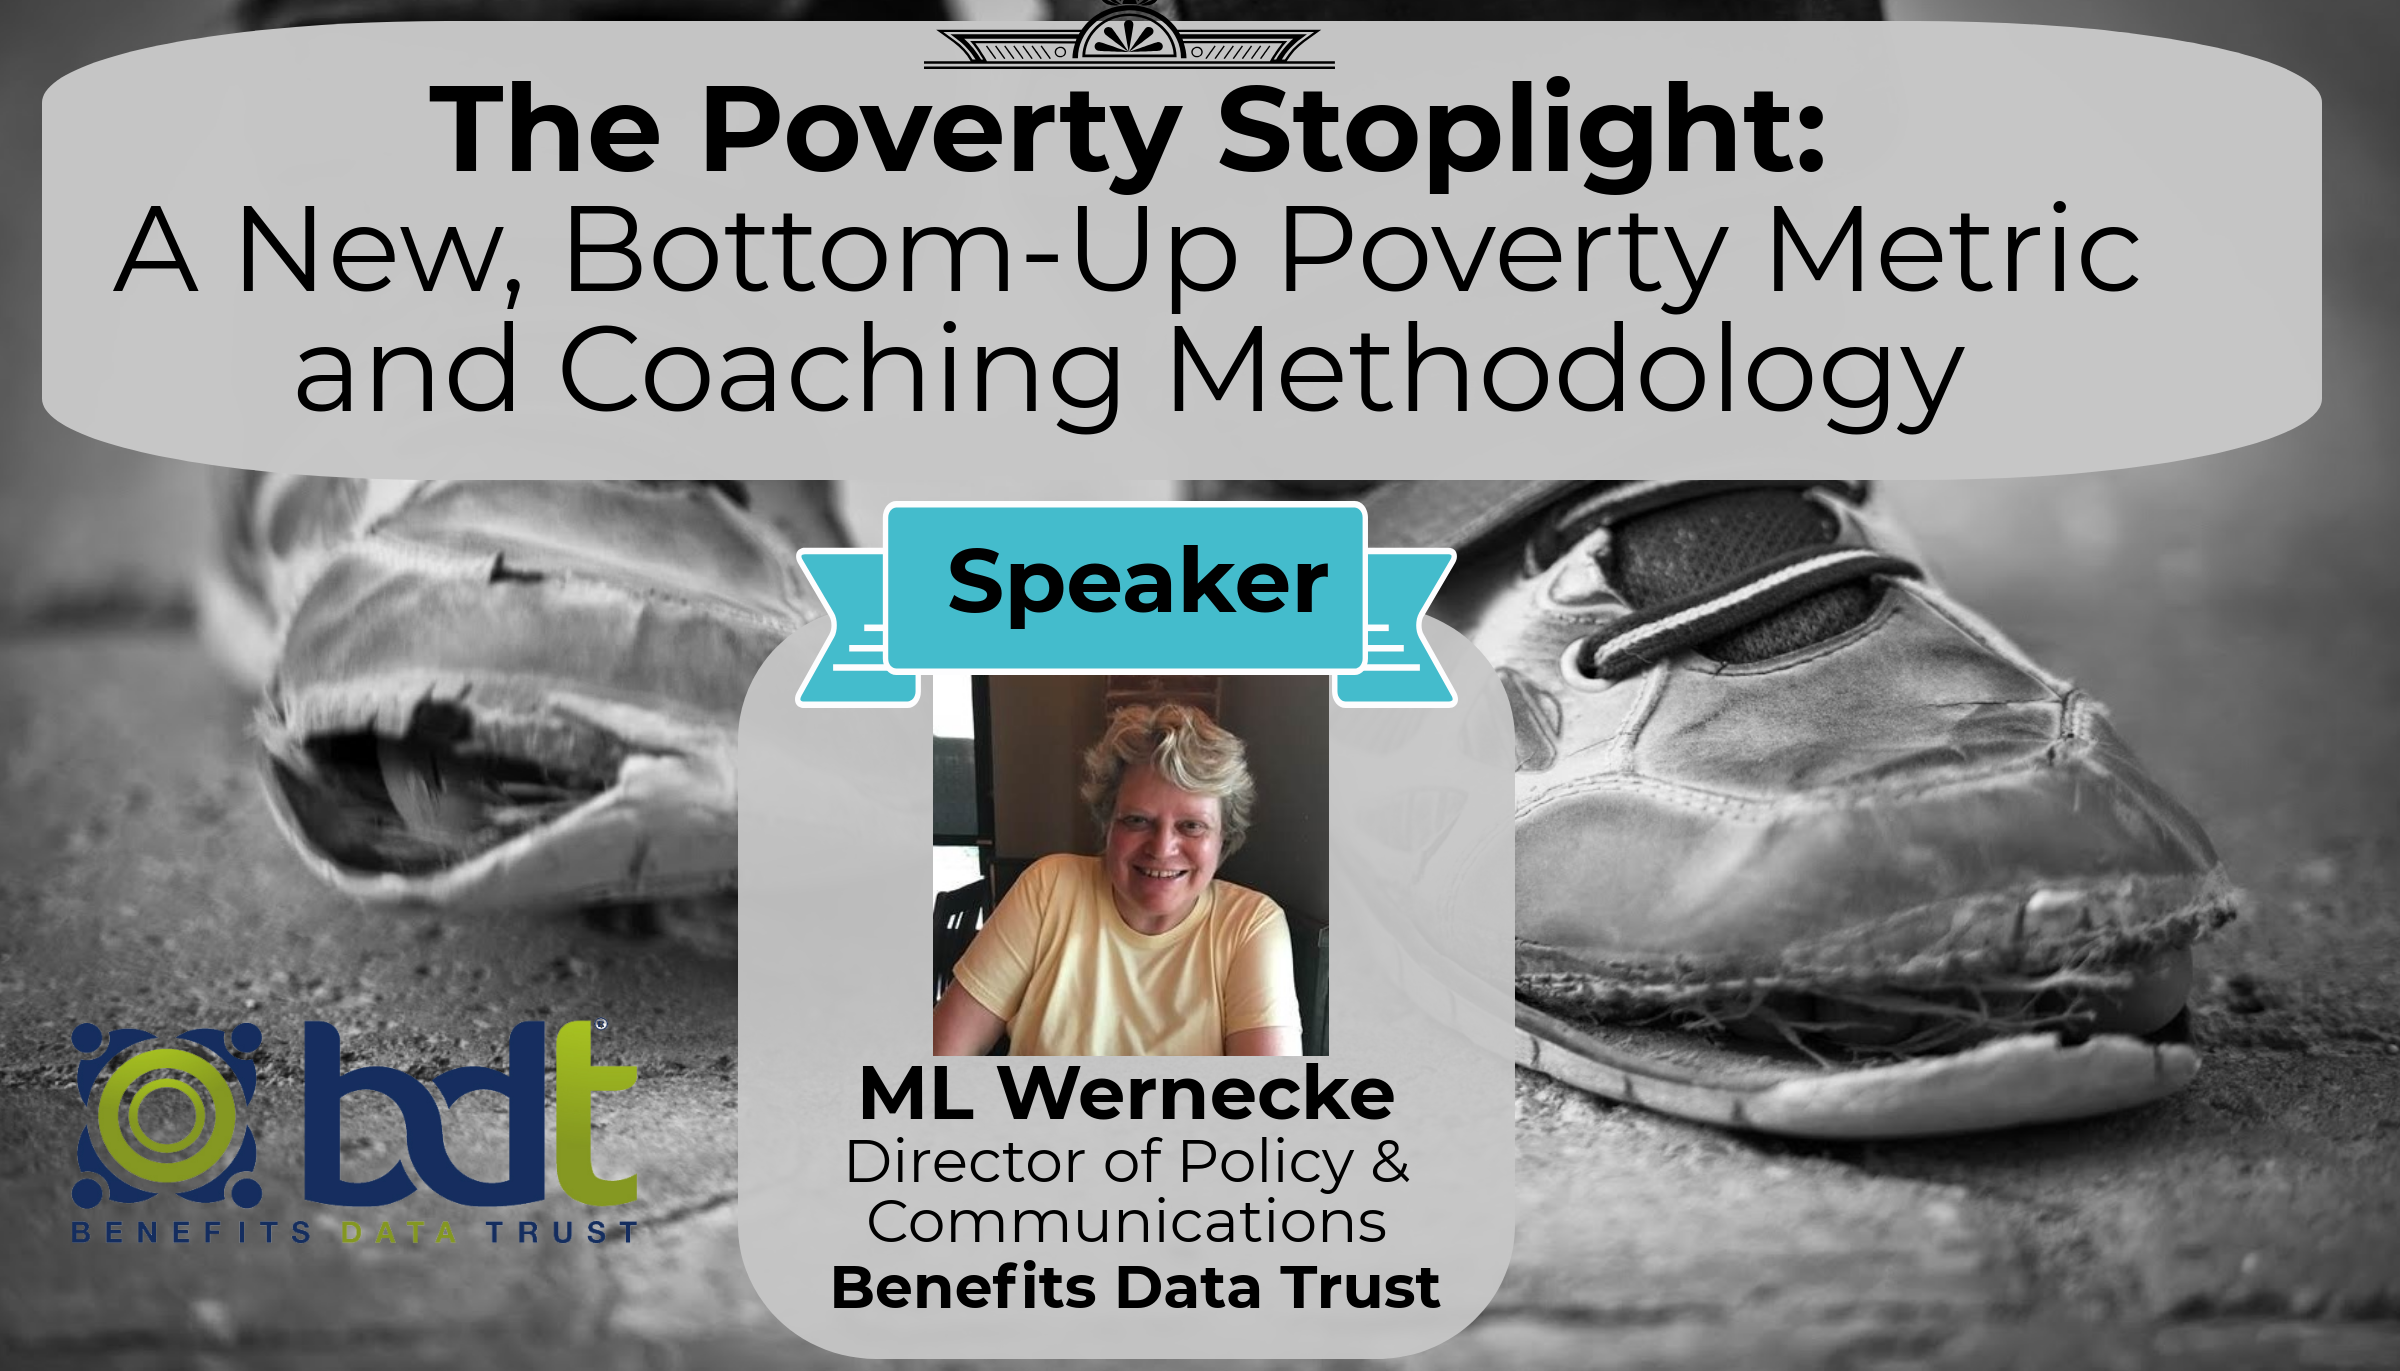 The Poverty Stoplight: A New, Poverty Metric & Coaching Methodology